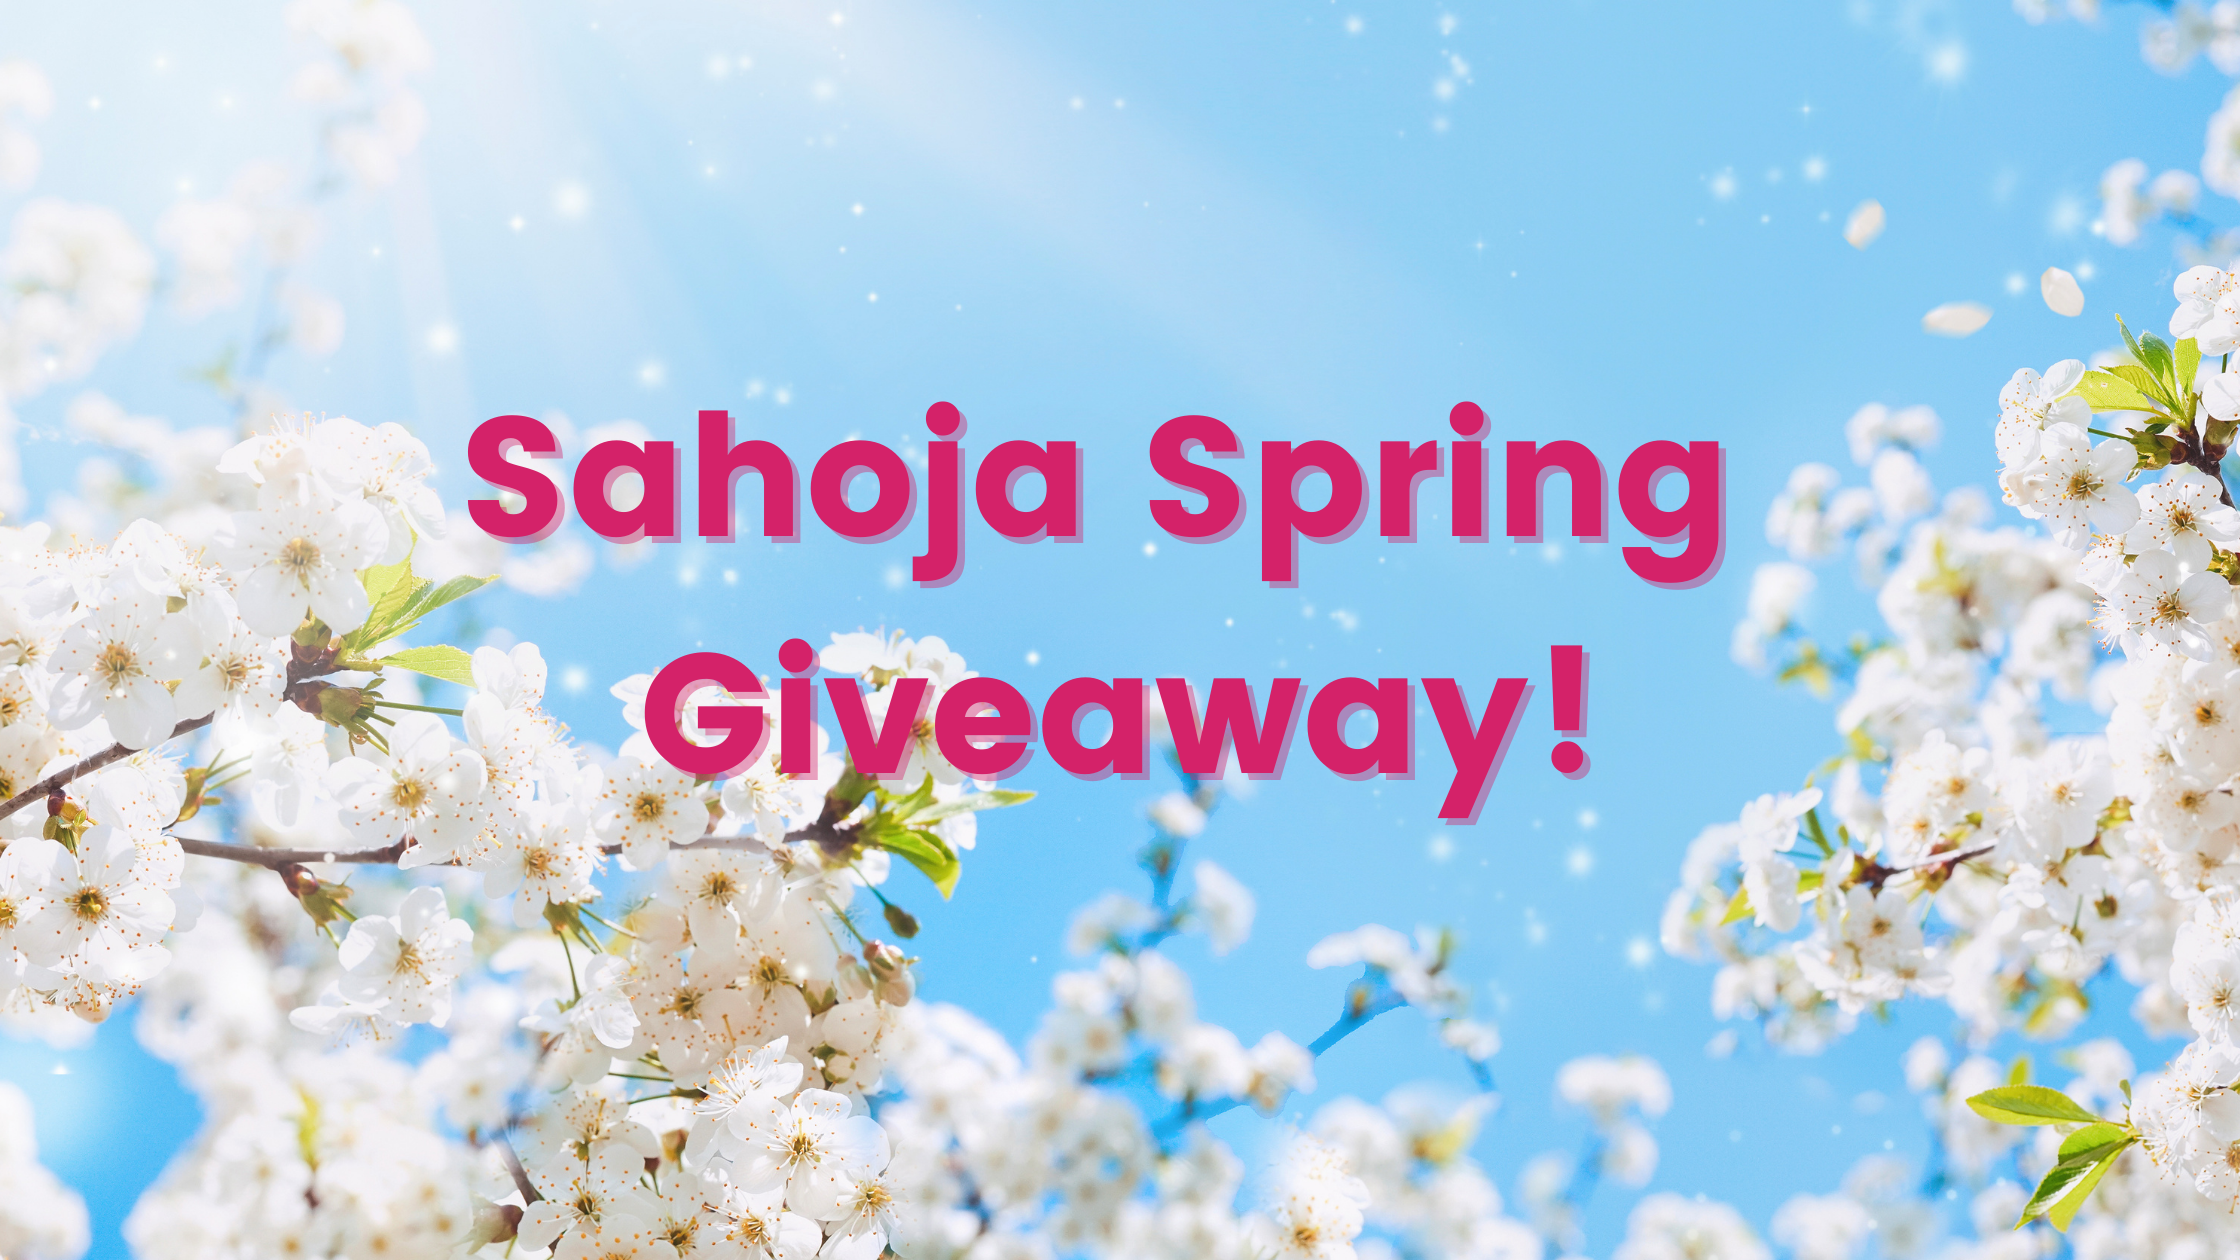 Spring flowers with blue sky - Sahoja Spring Giveaway!